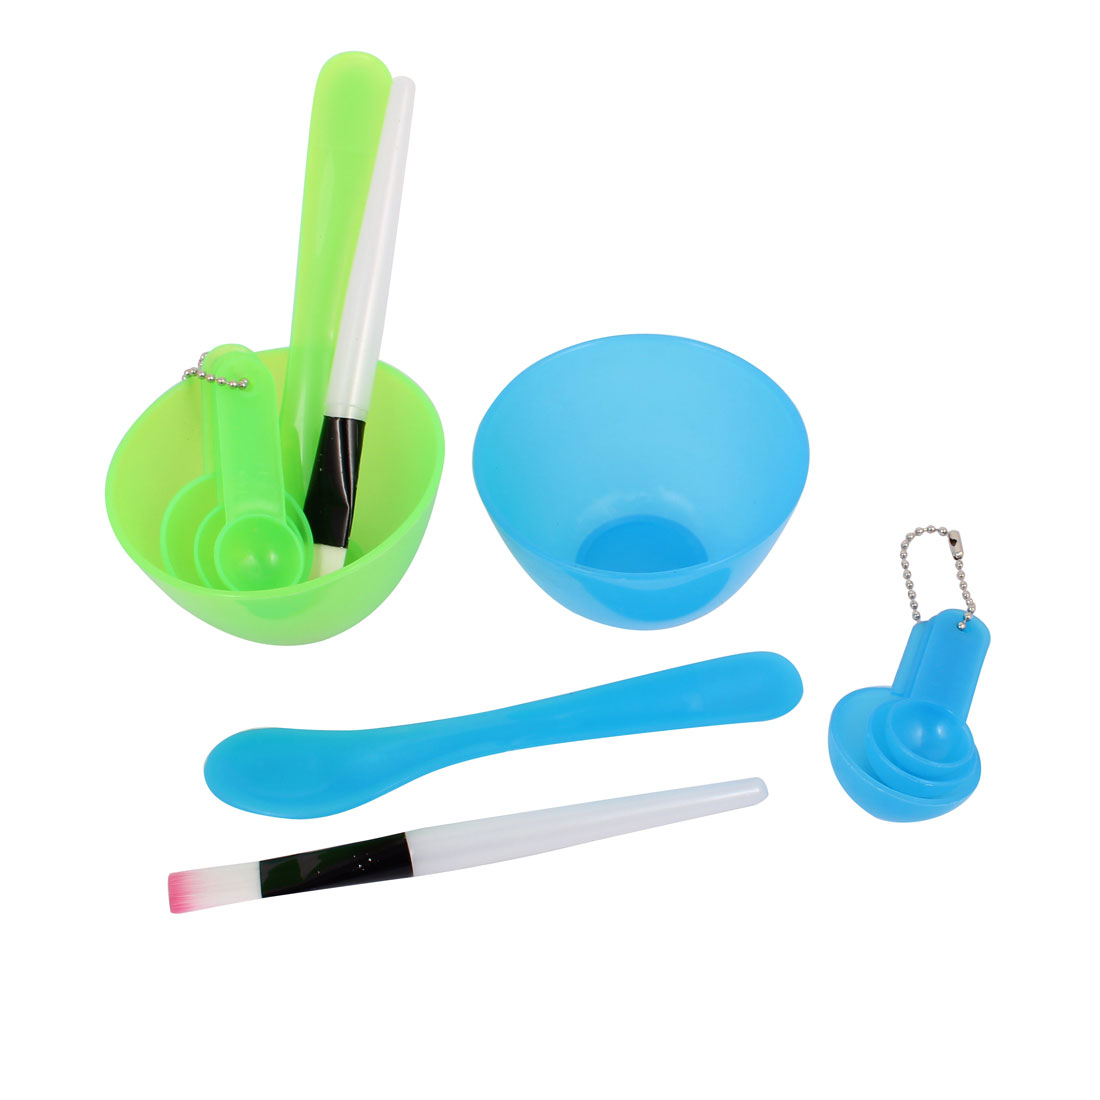 Women Plastic Facial Mask Bowl Measuring Spoon Stick Brush Green Blue 2 Sets